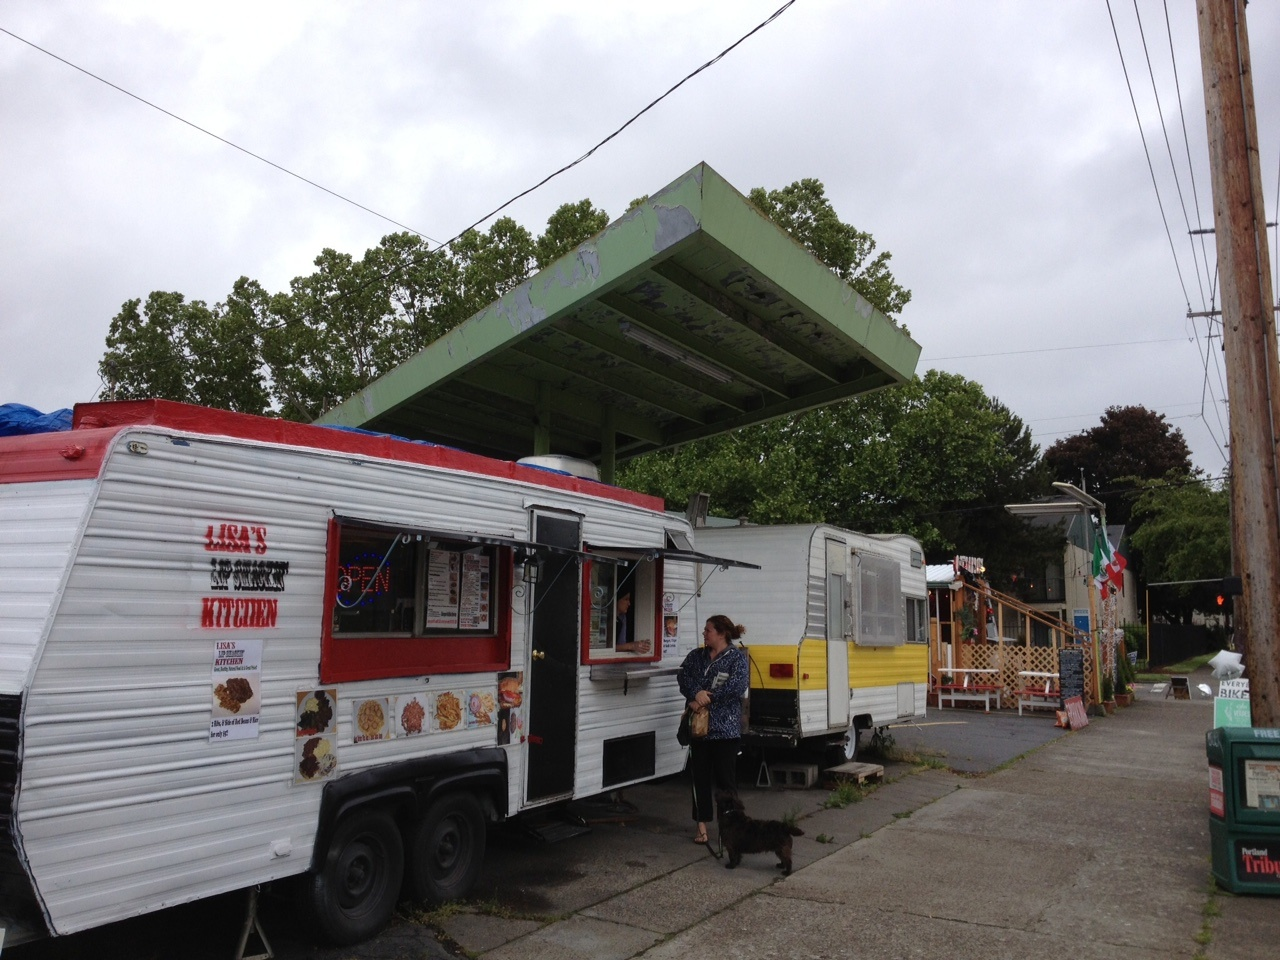 Urban living is about living on the streets?  Food carts in Portland's suburbs encourage street dining.